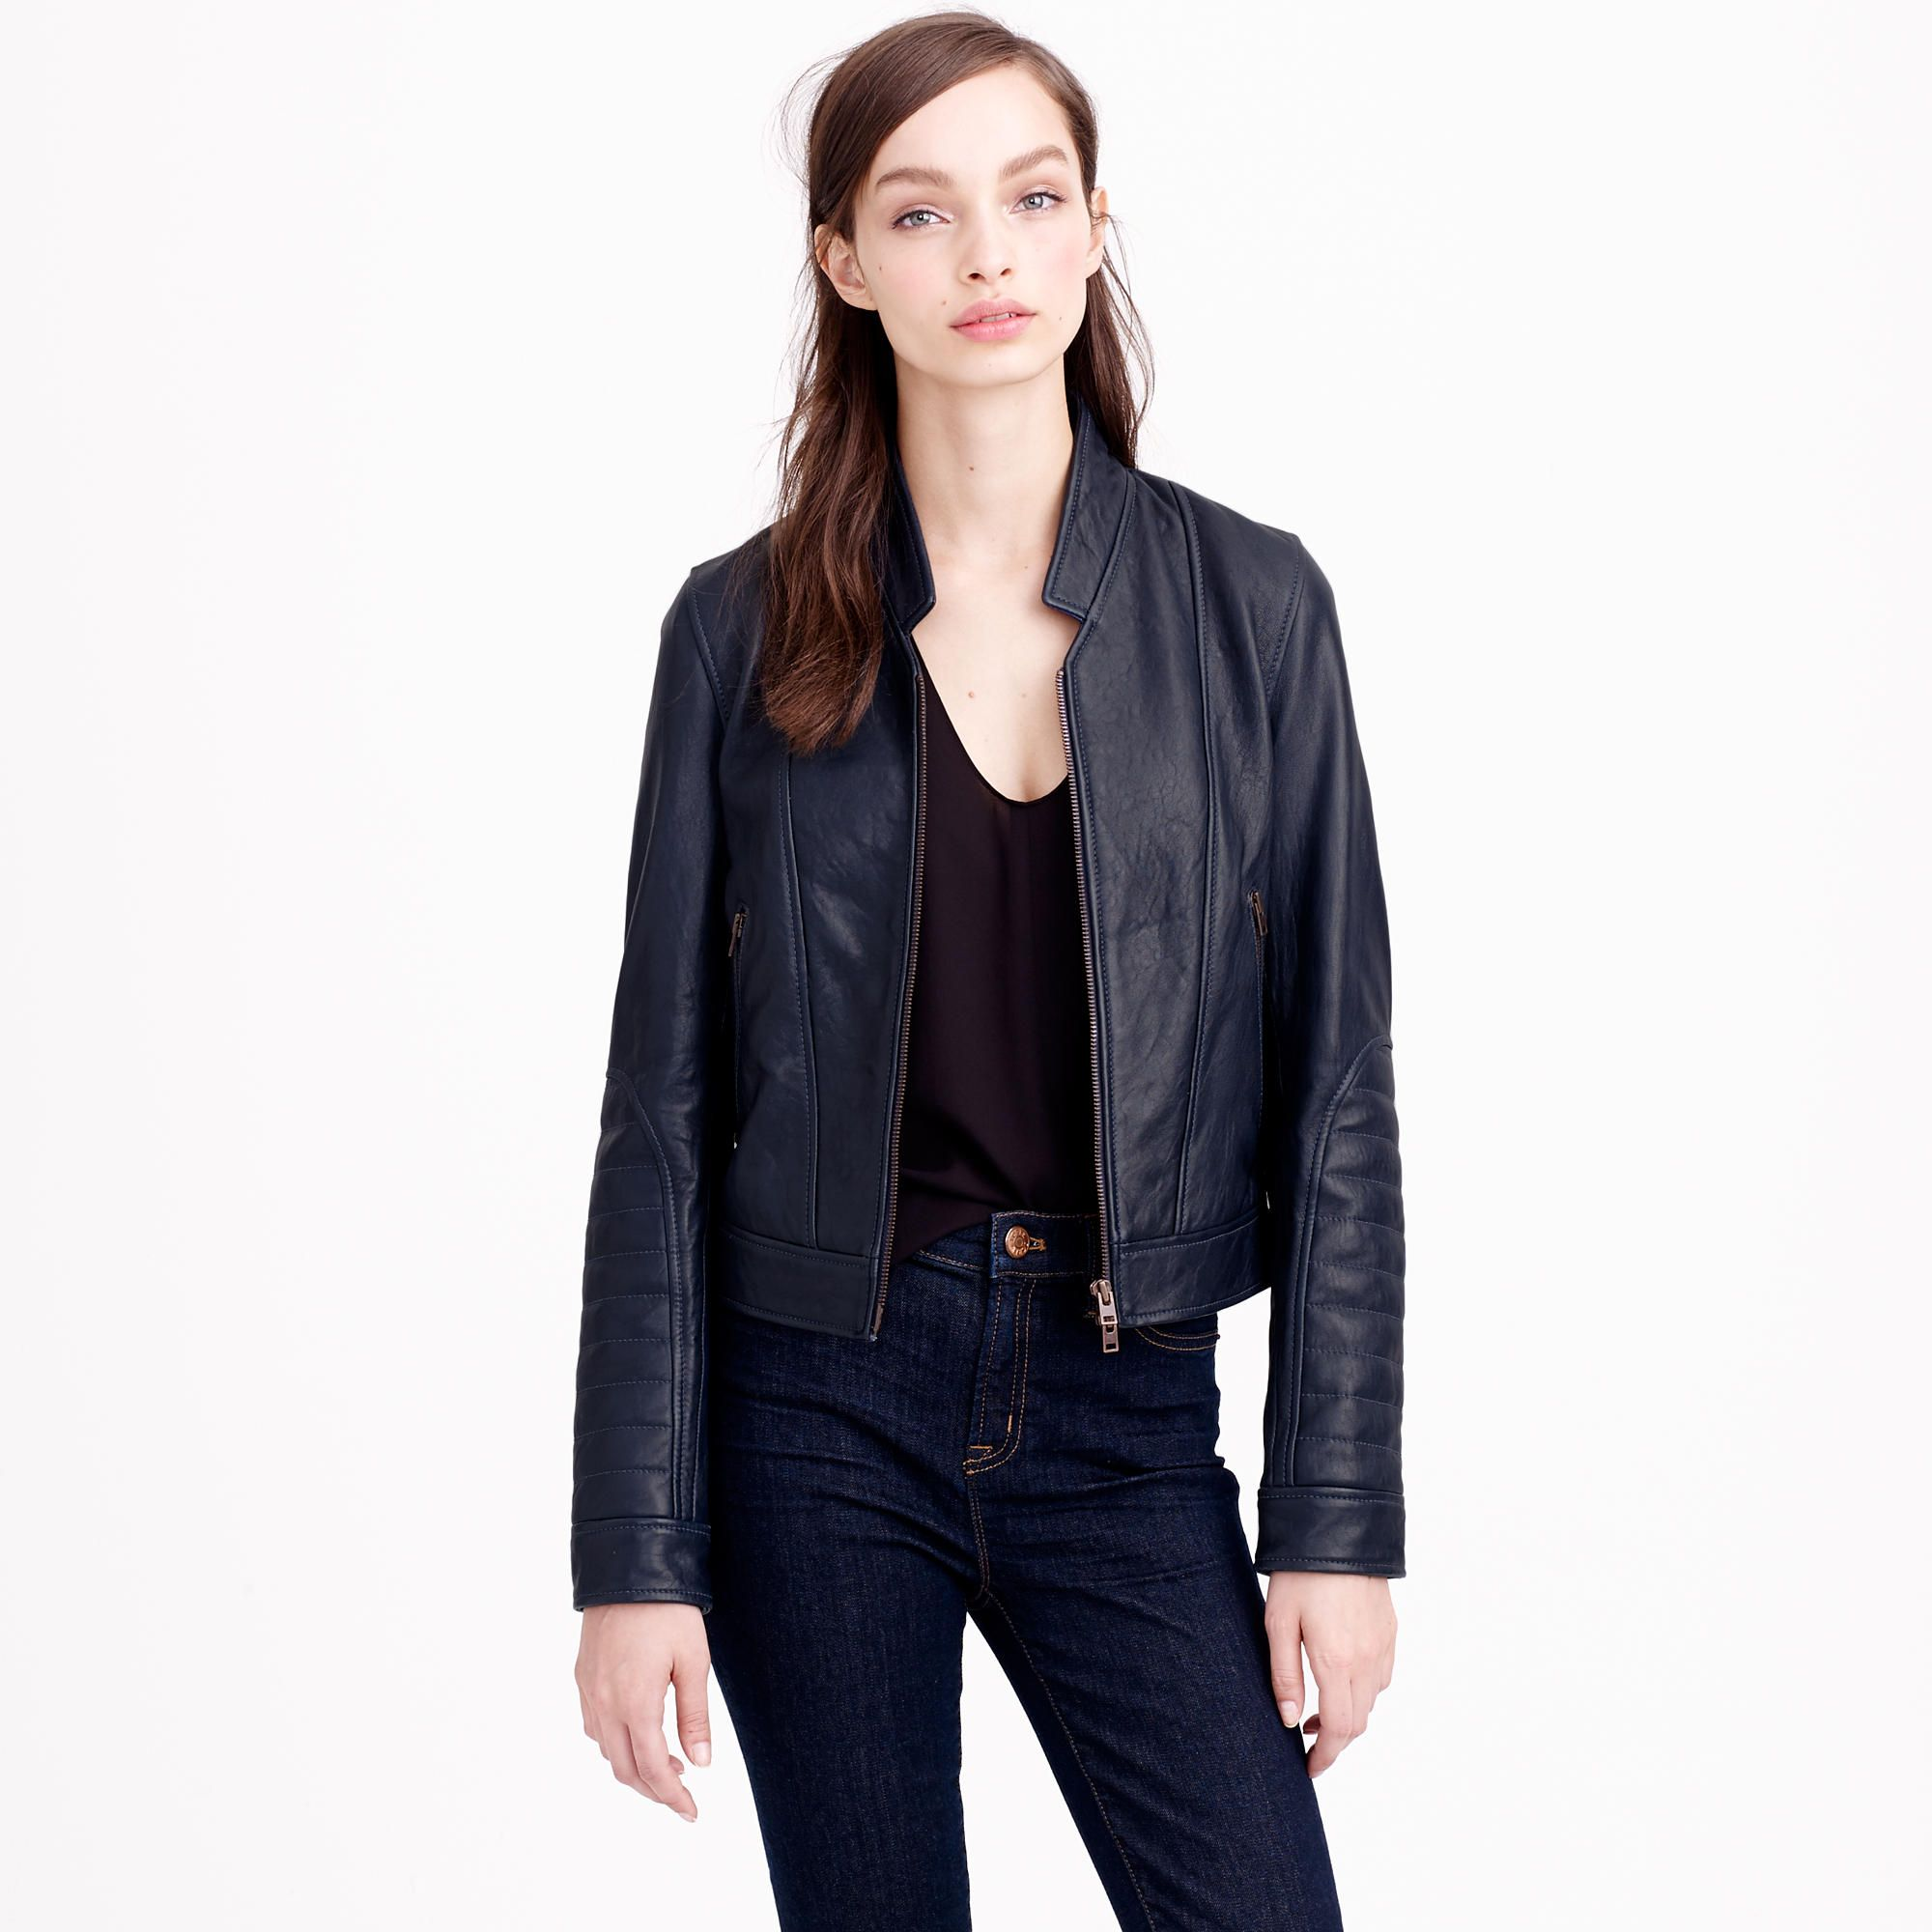 b4a9c8557 Collection Standing Collar Leather Jacket | J. Crew | Navy blue ...